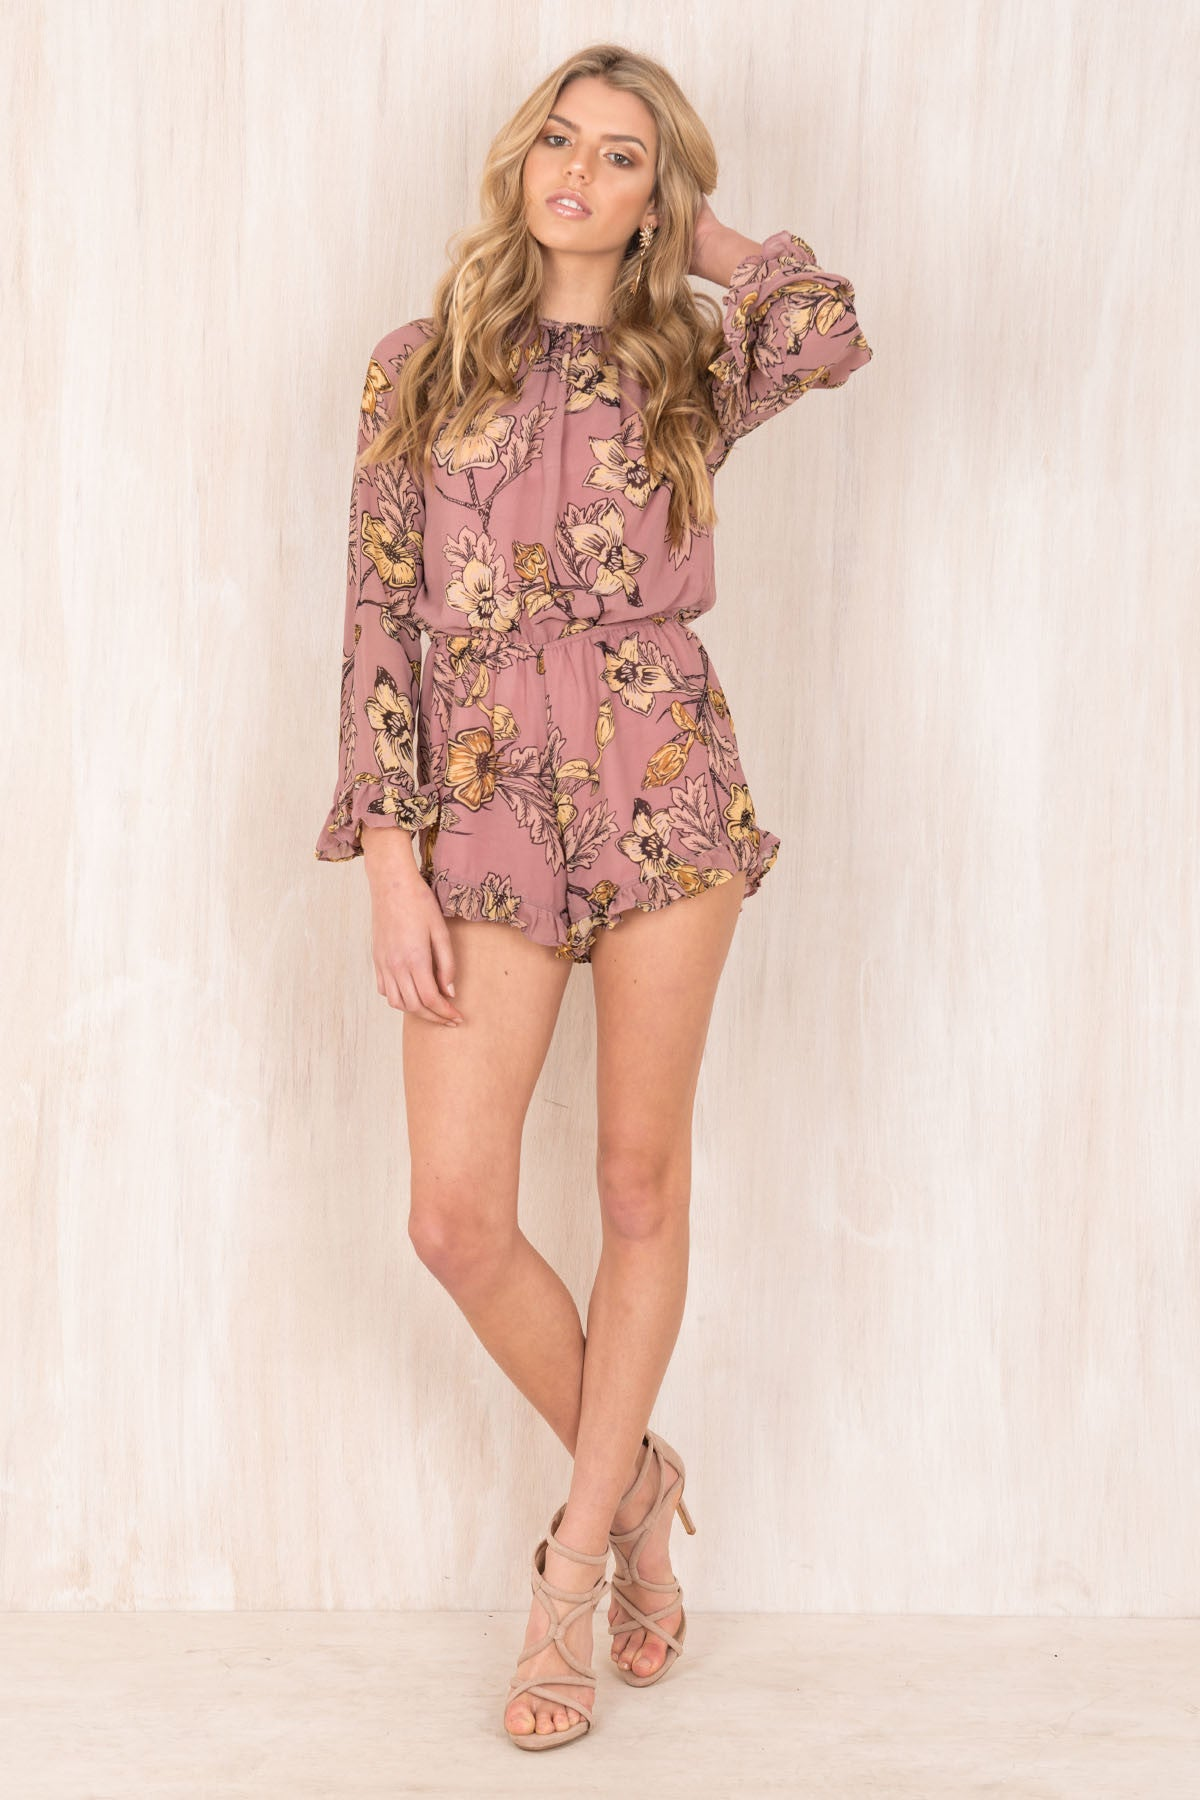 Harvest Moon Playsuit